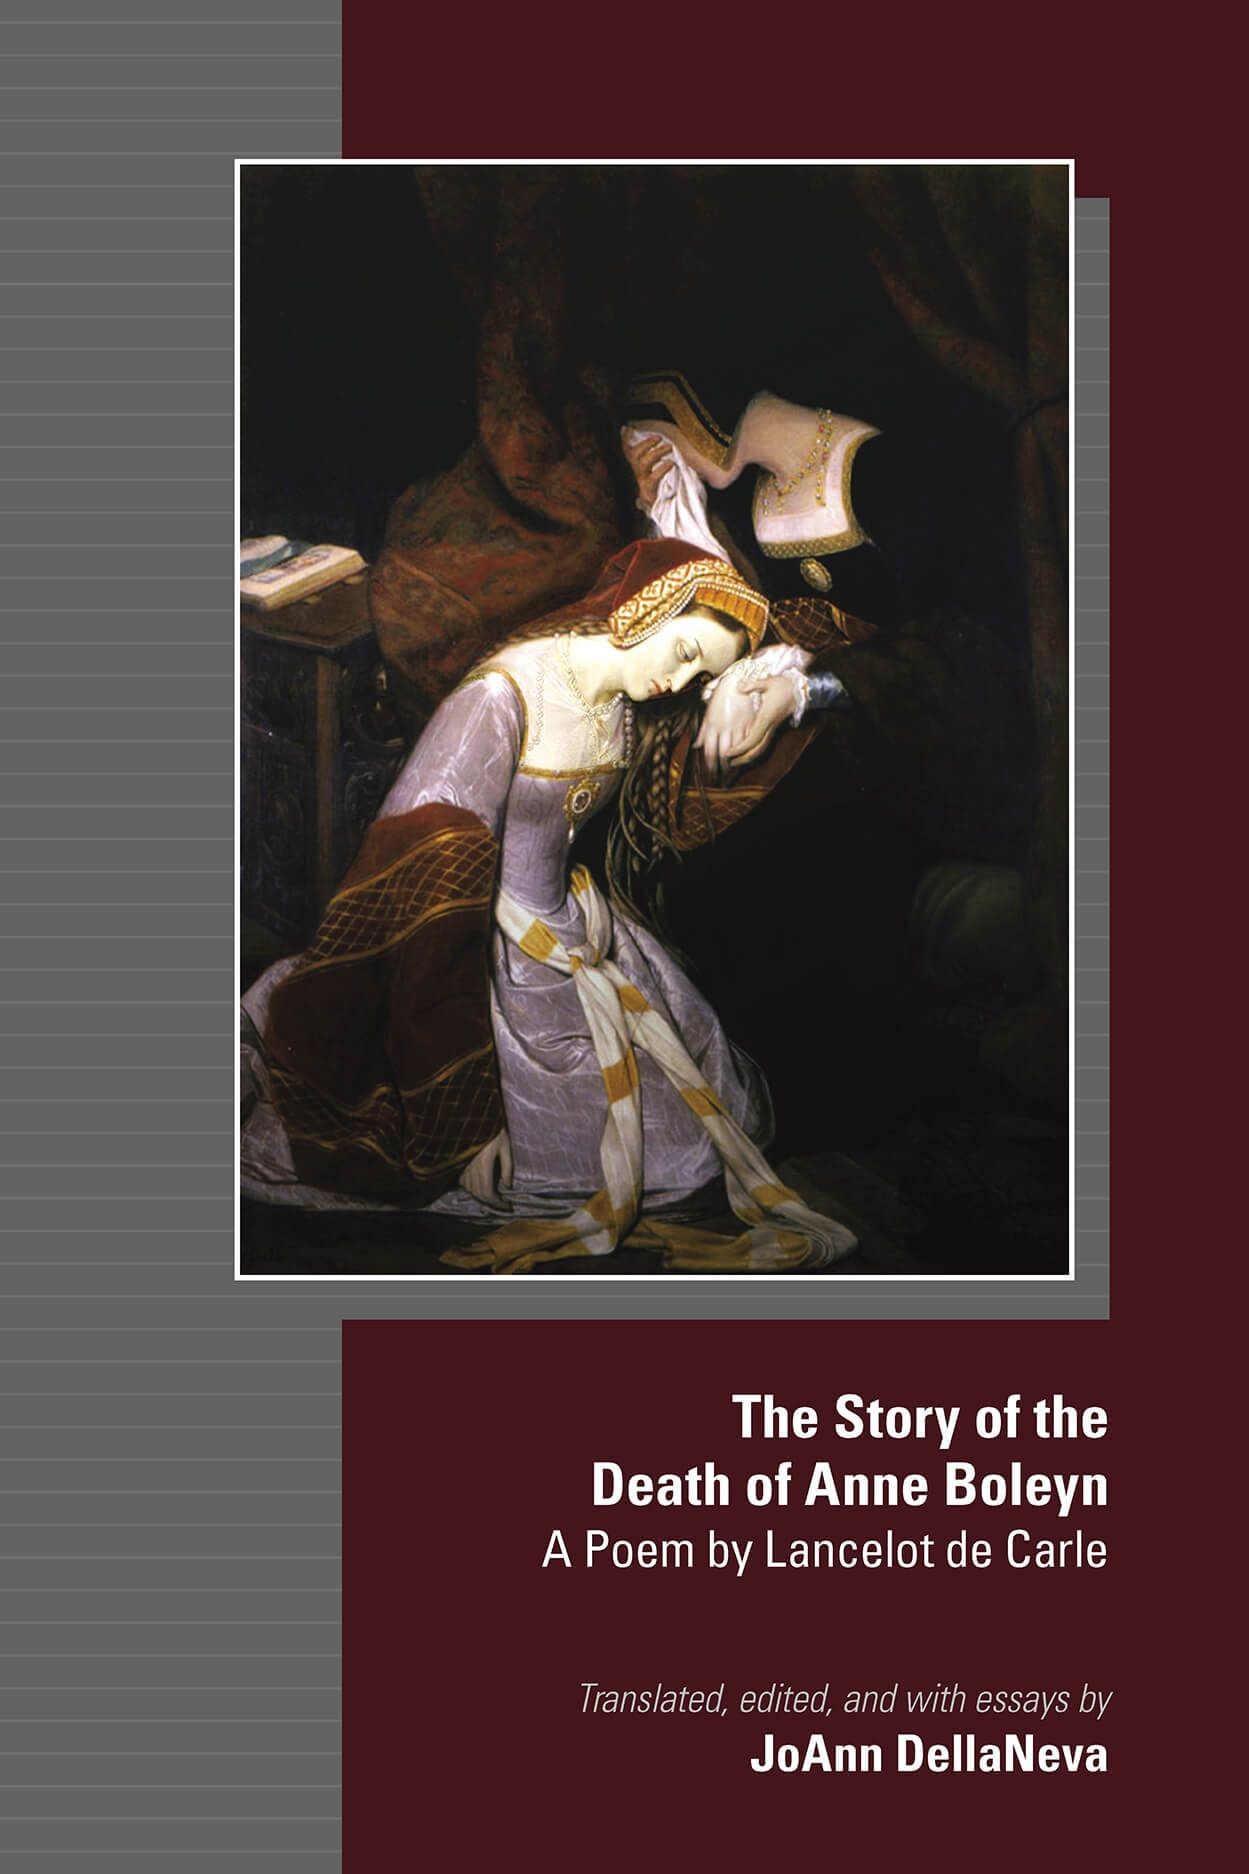 The Story of the Death of Anne Boleyn: A Poem by Lancelot de Carle